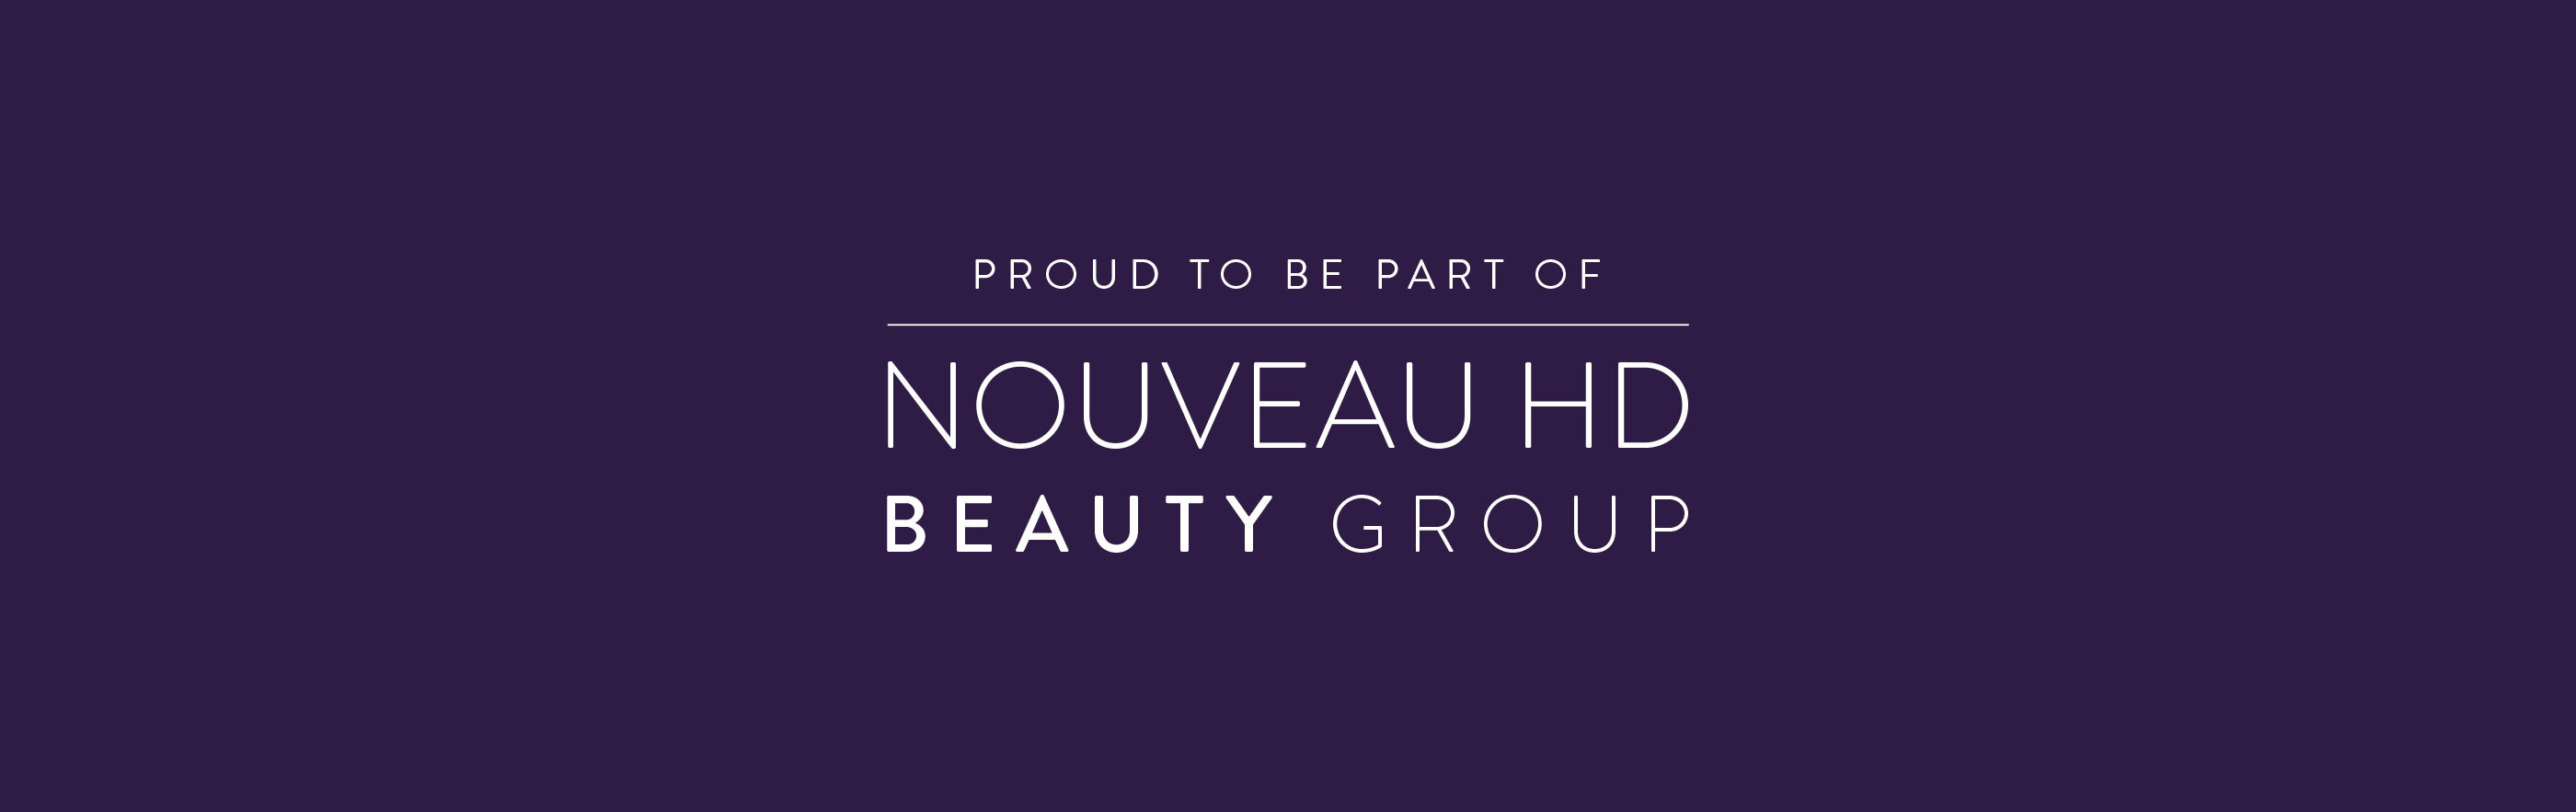 Proud to be part of Nouveau HD Beauty Group